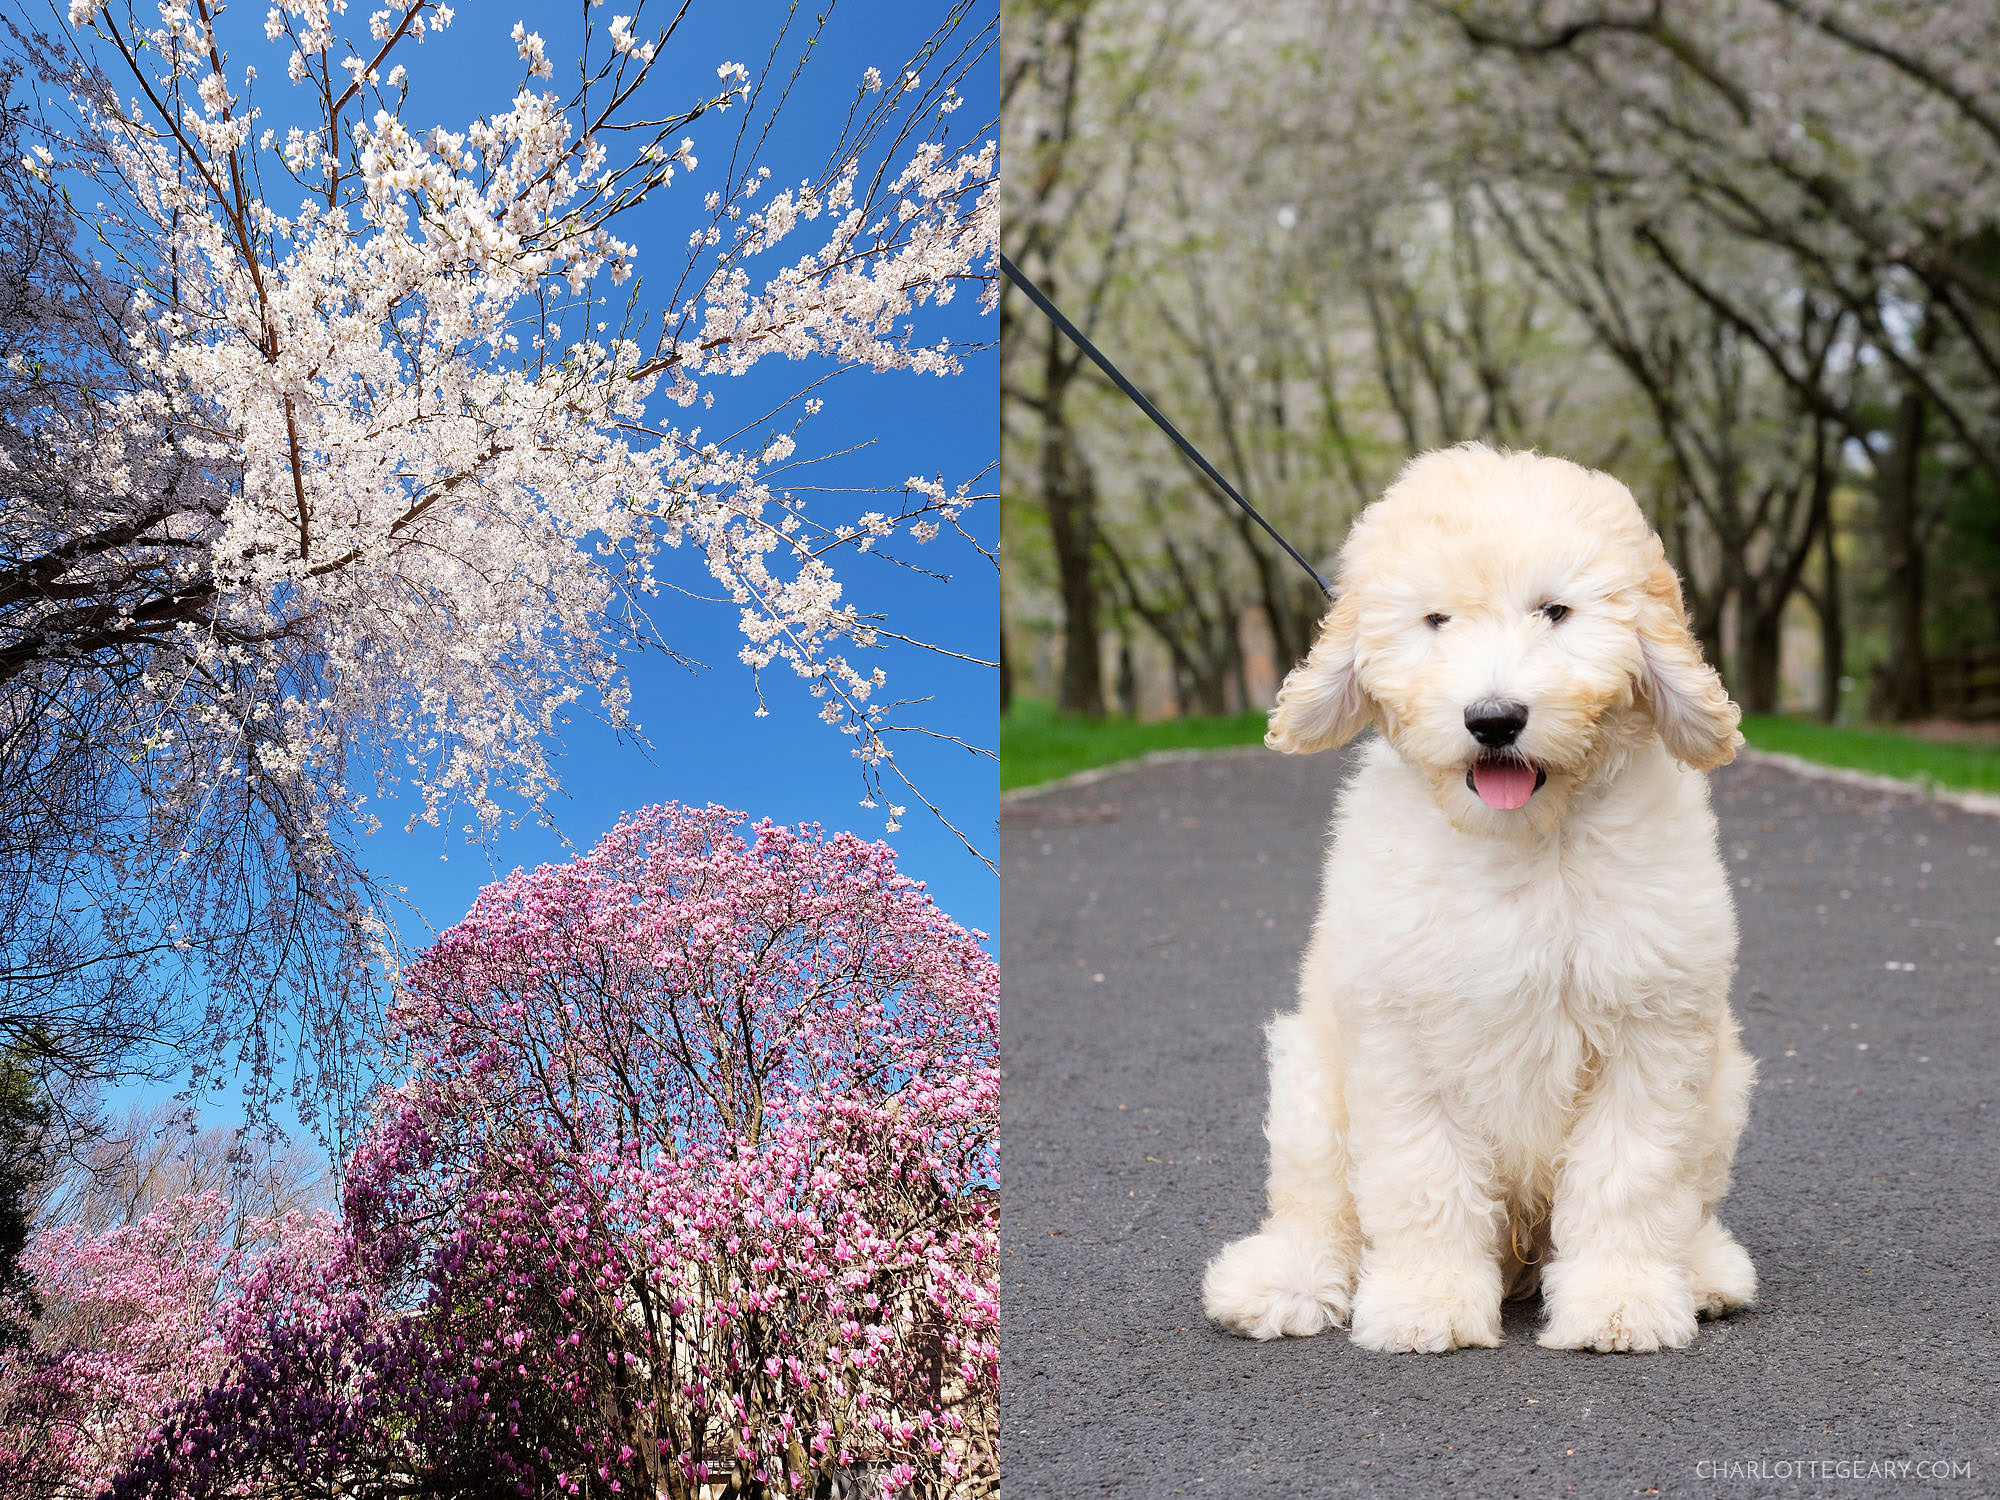 Golden doodle puppy in cherry blossoms